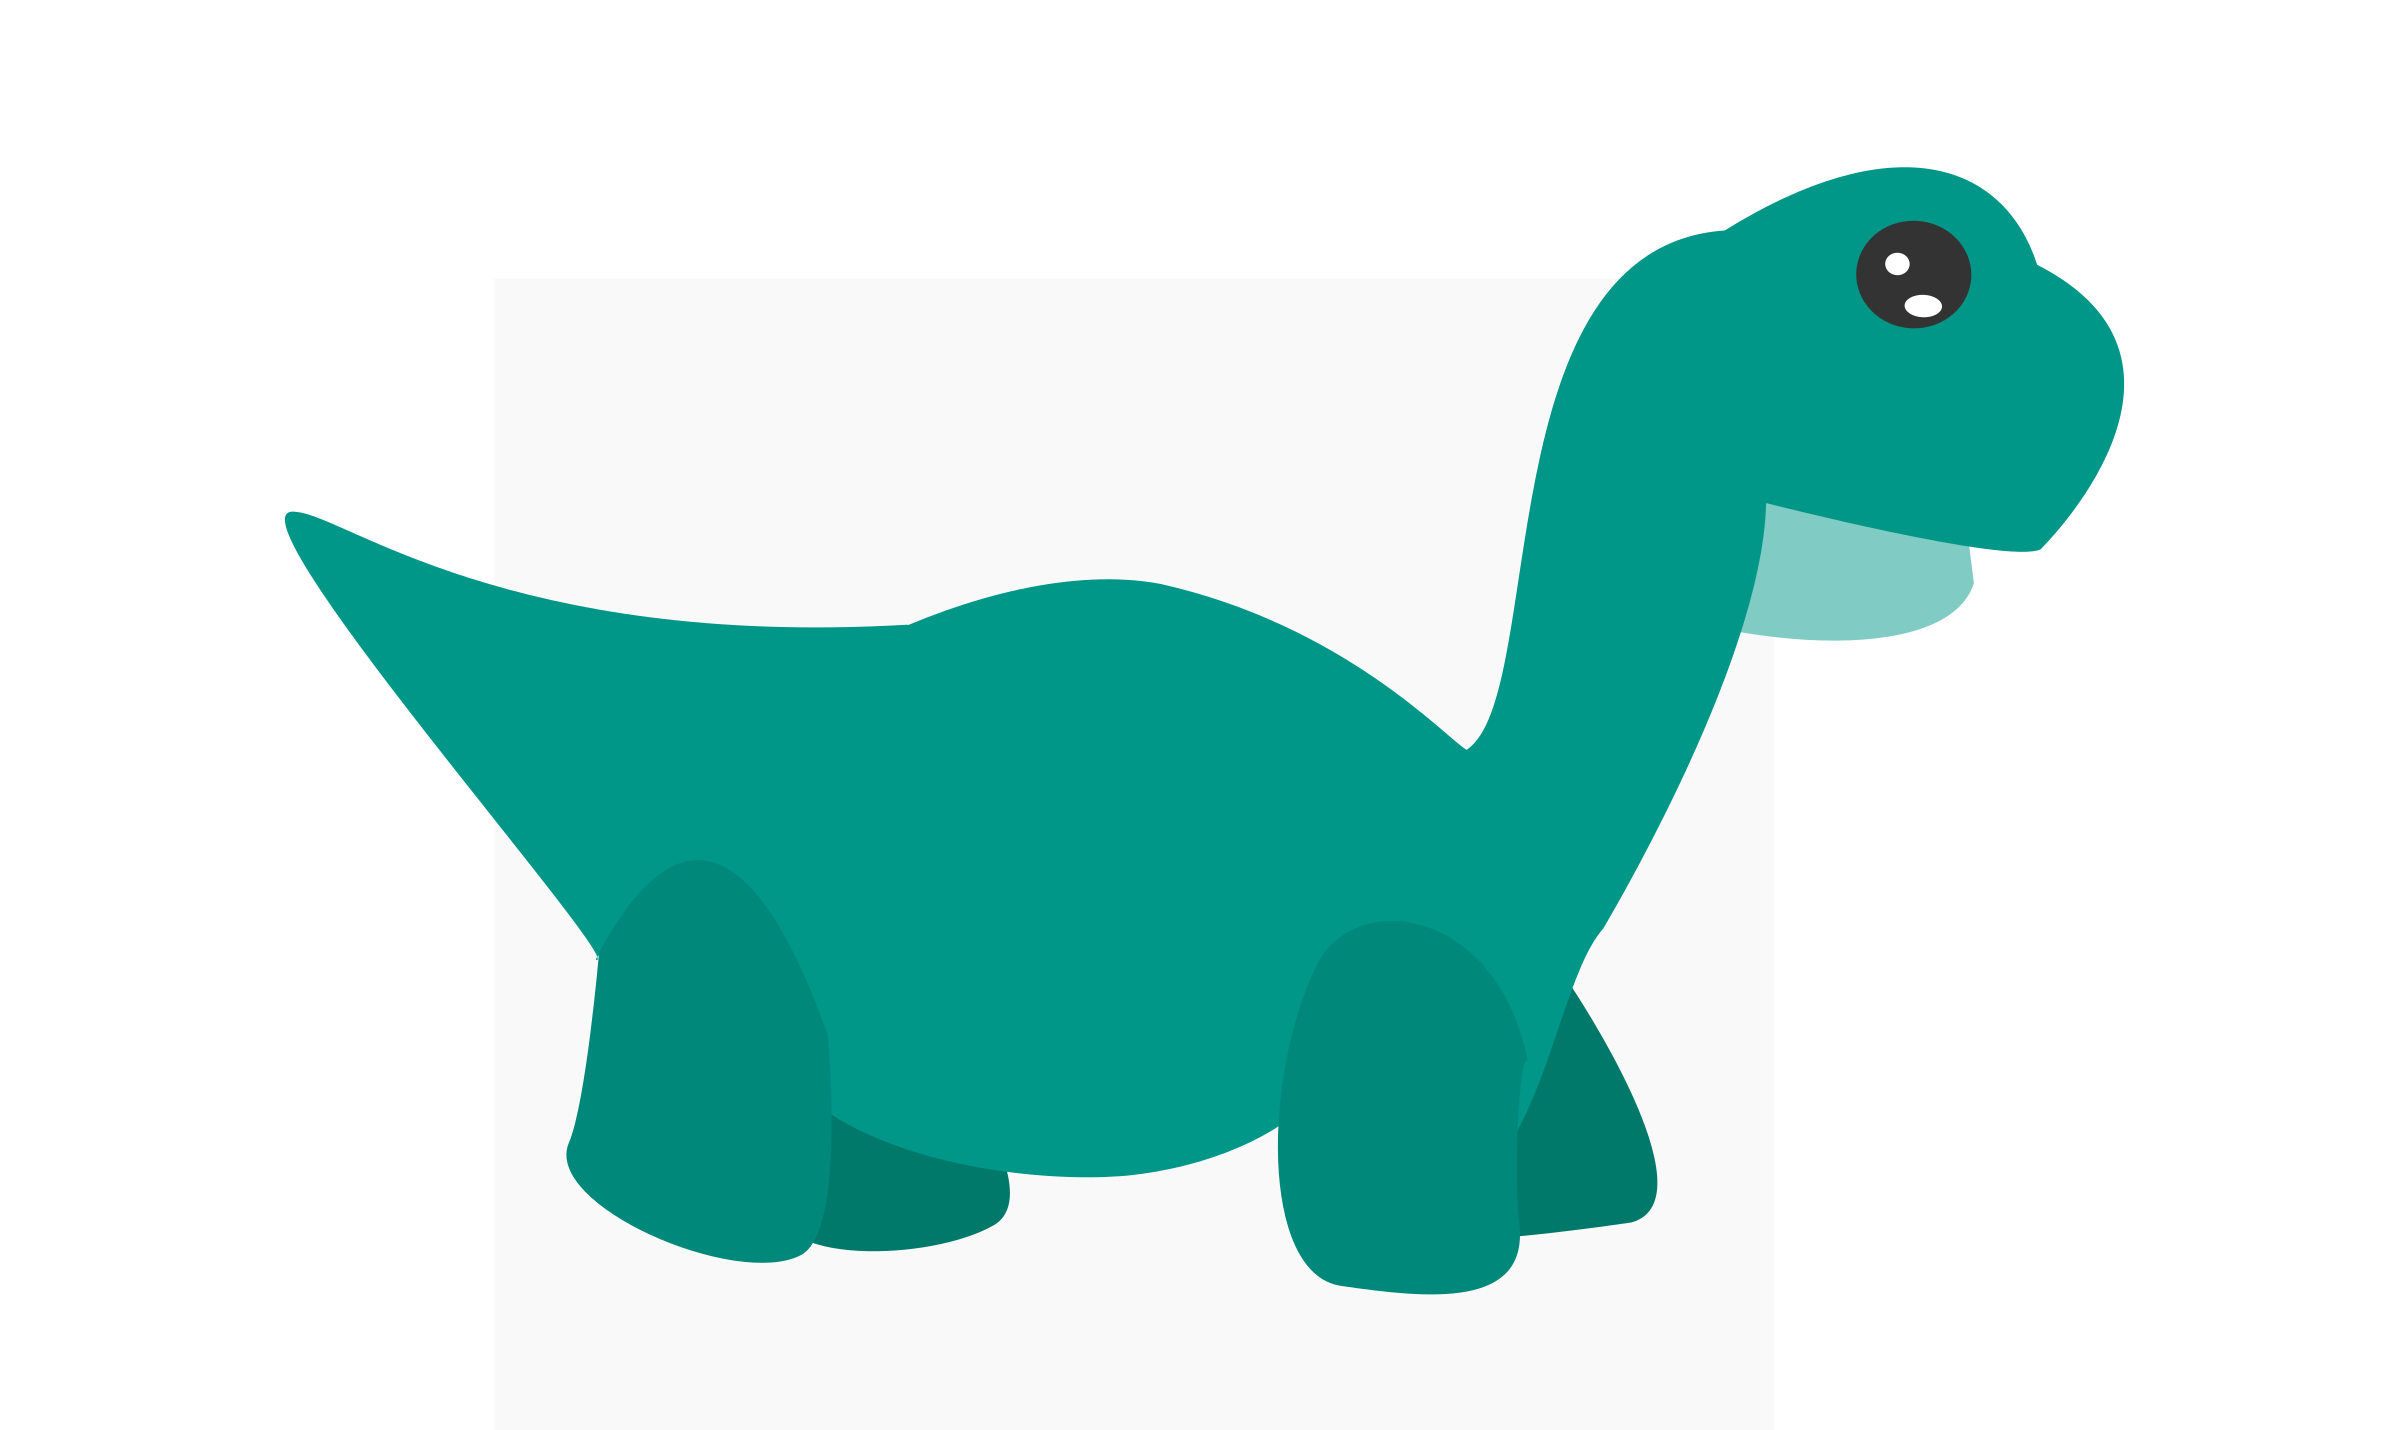 Foods clipart dinosaur. Jeffy the icons png